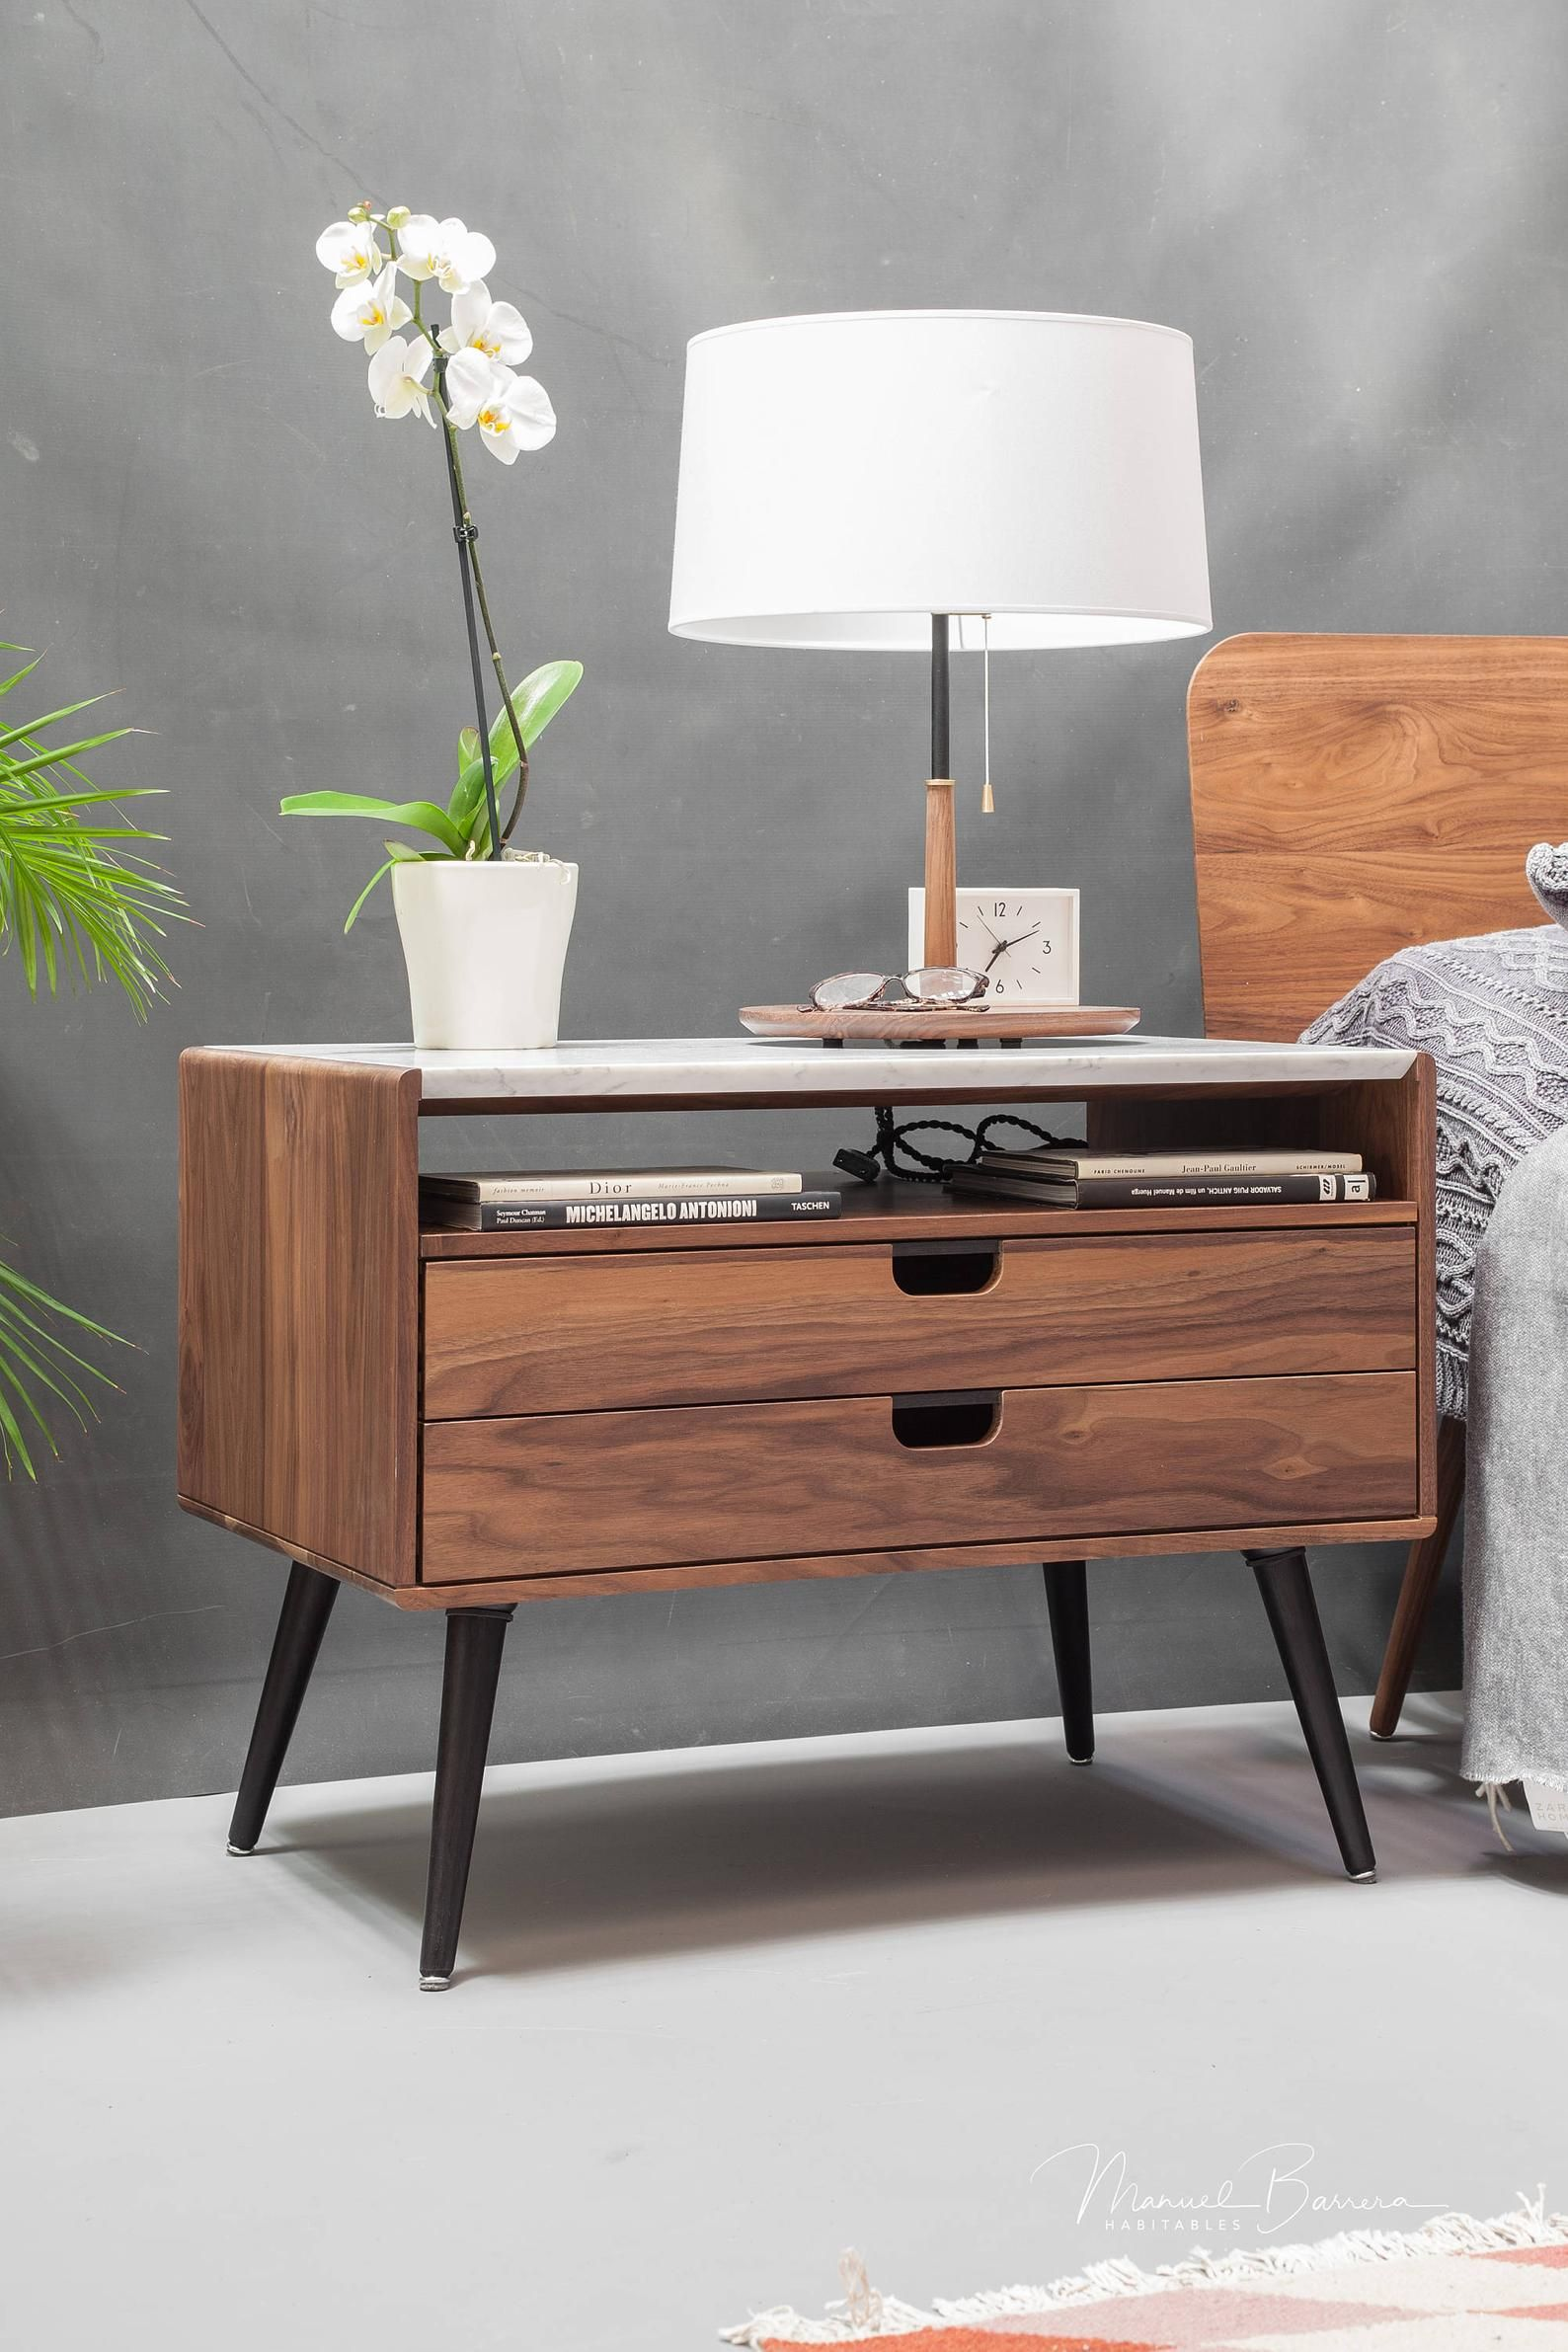 Retro Style Container Bedside Table: 2020的Nightstand Bedside Table With Two Drawers In Solid